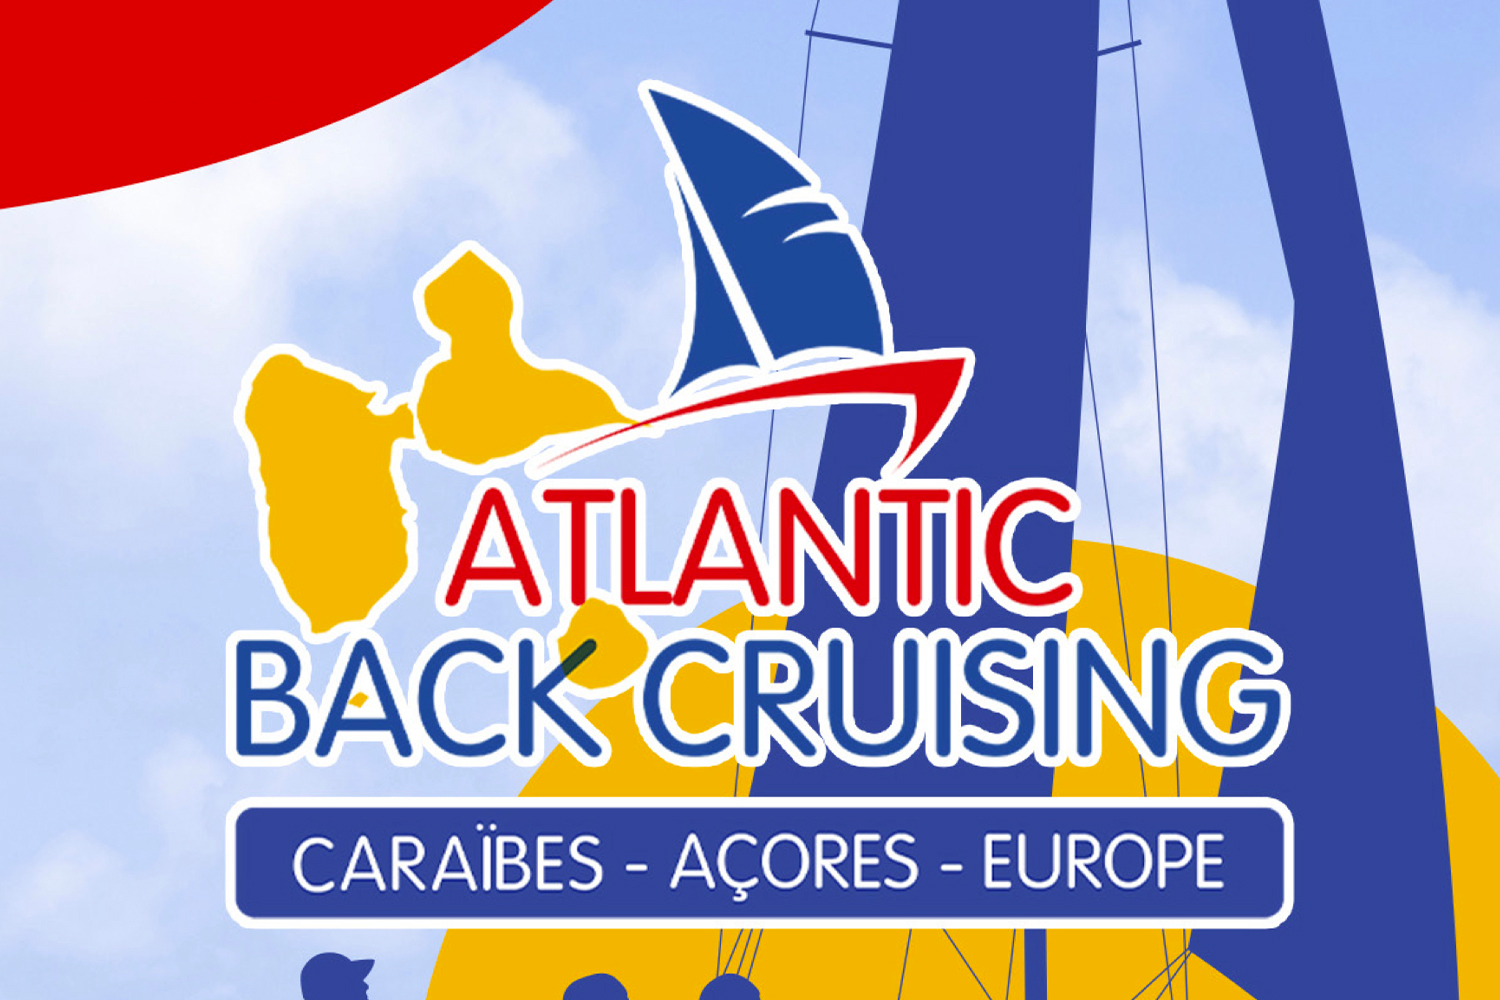 La transat Atlantic Back Cruising